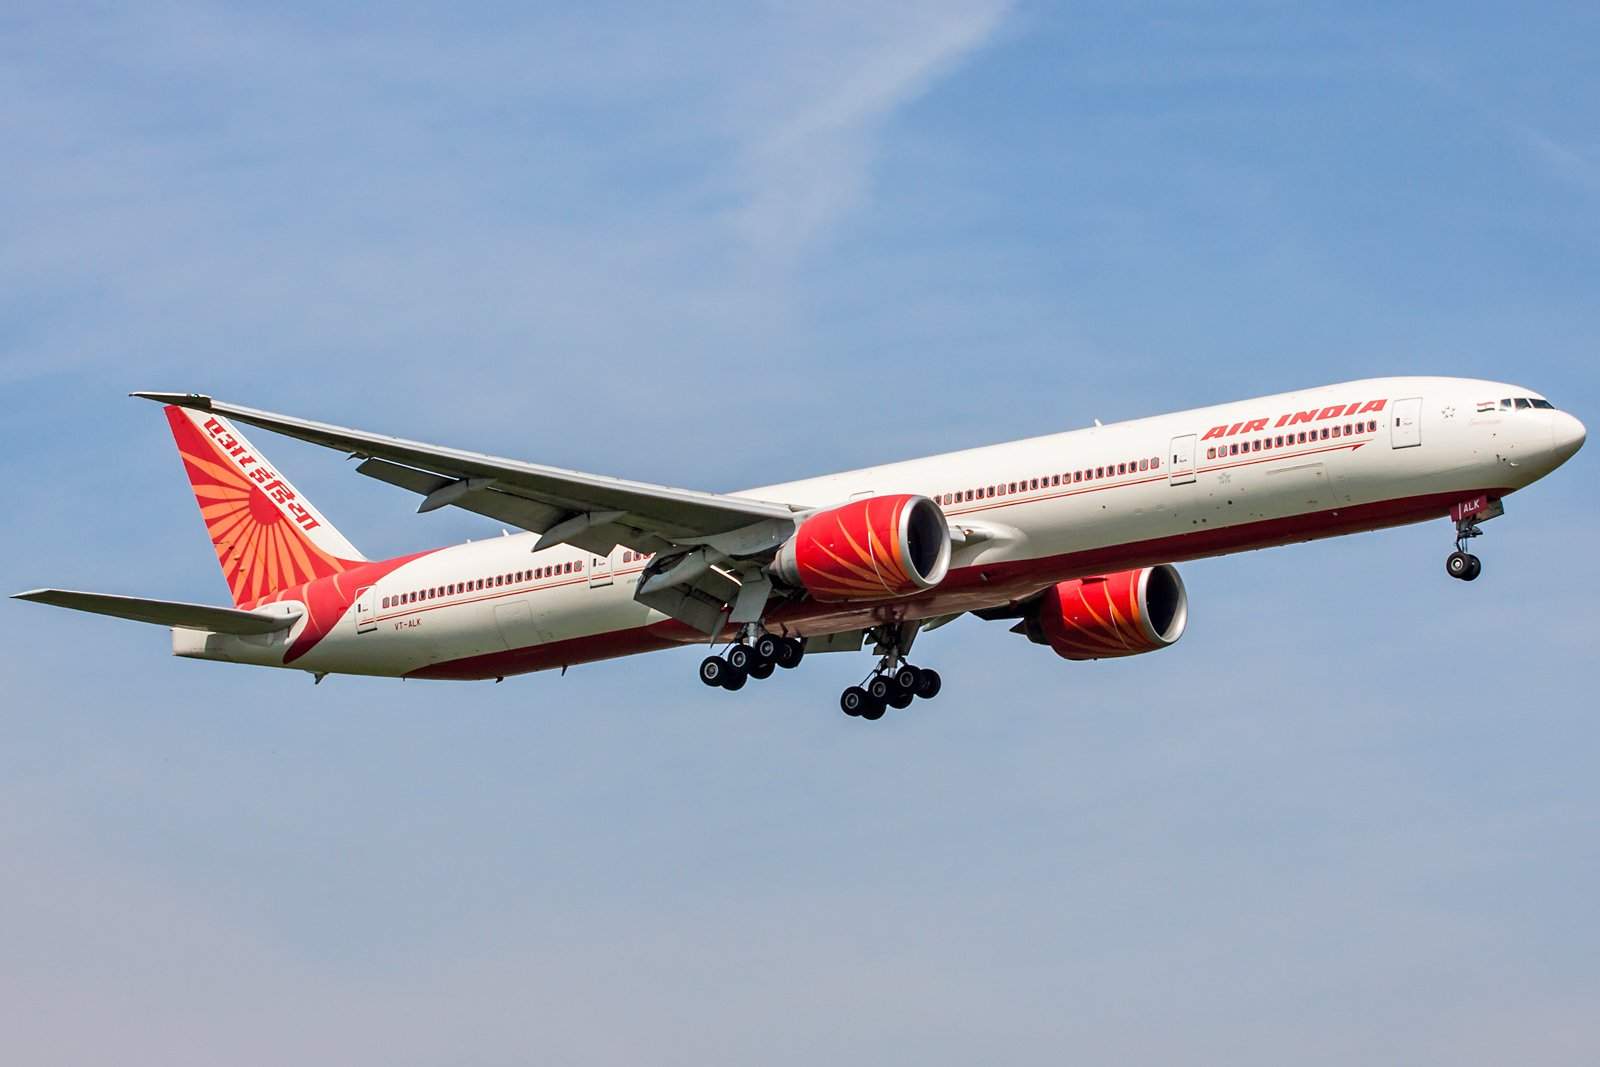 Air India Boeing 777-337(ER) VT-ALK